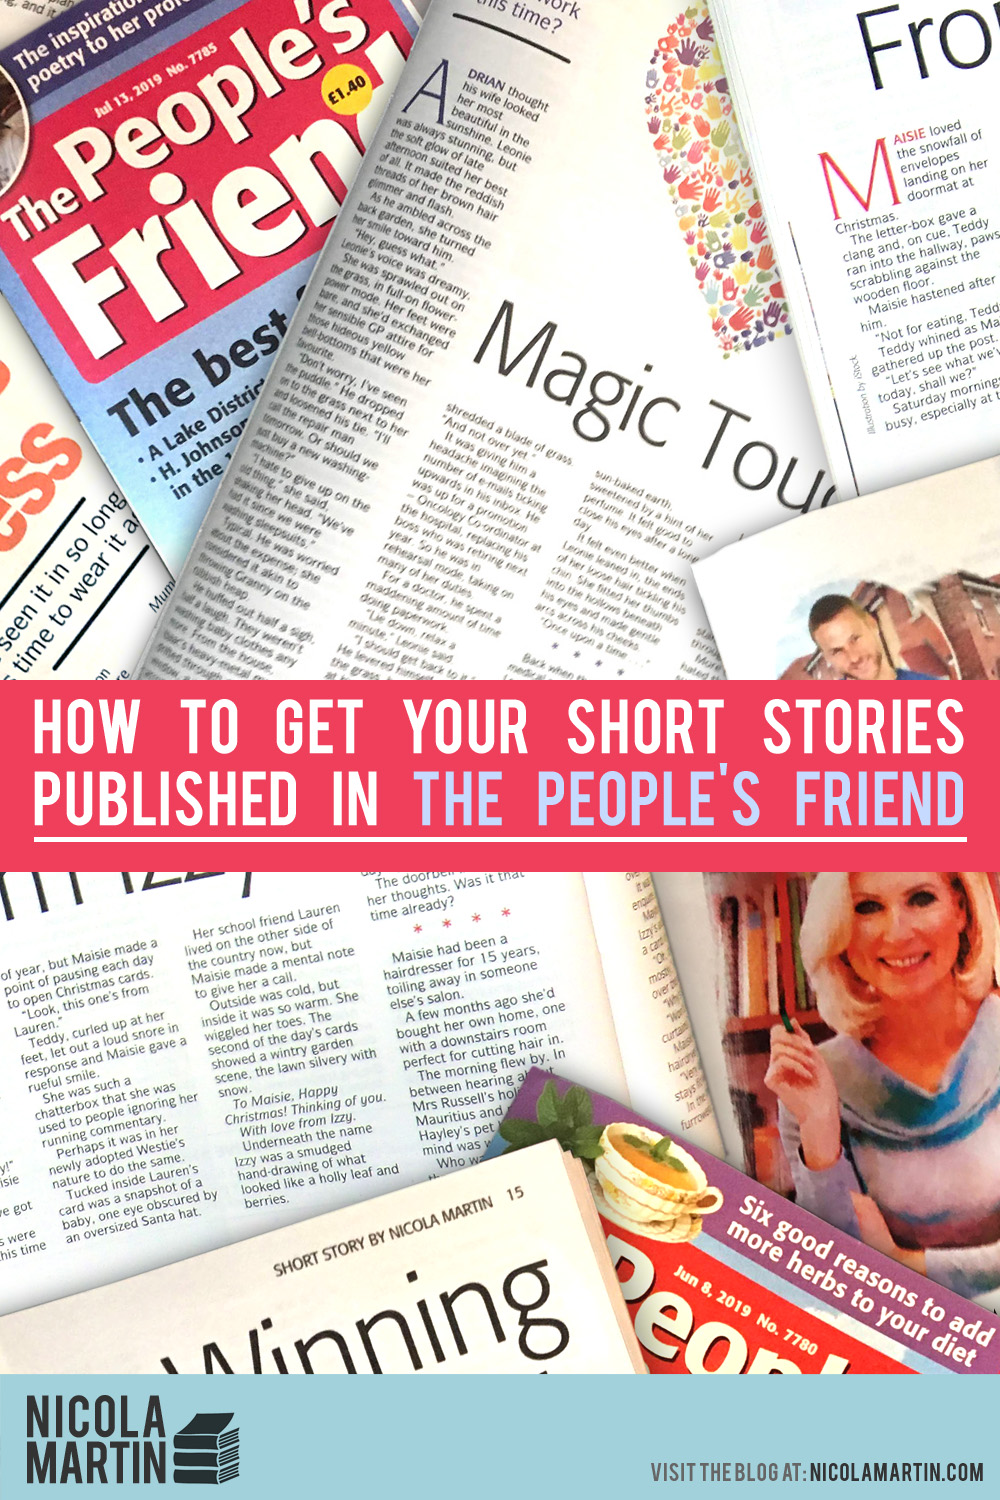 How to get your short stories published in The People's Friend